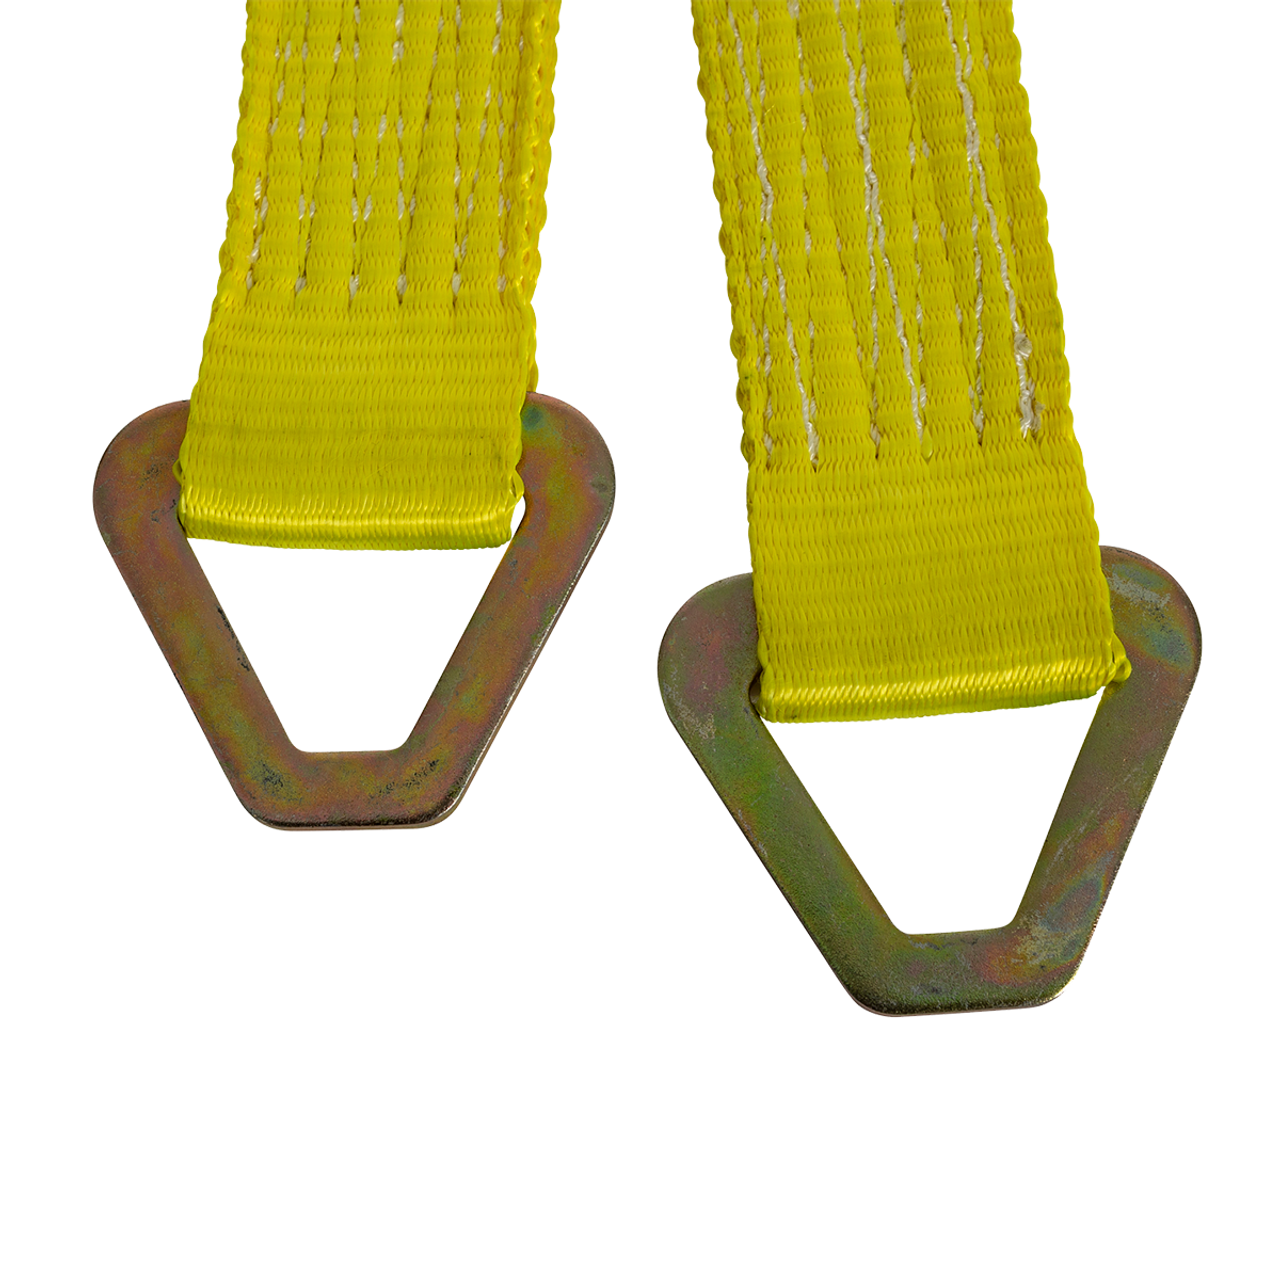 AS3-2PK --- Axle Strap with D-Rings - 2 Pack